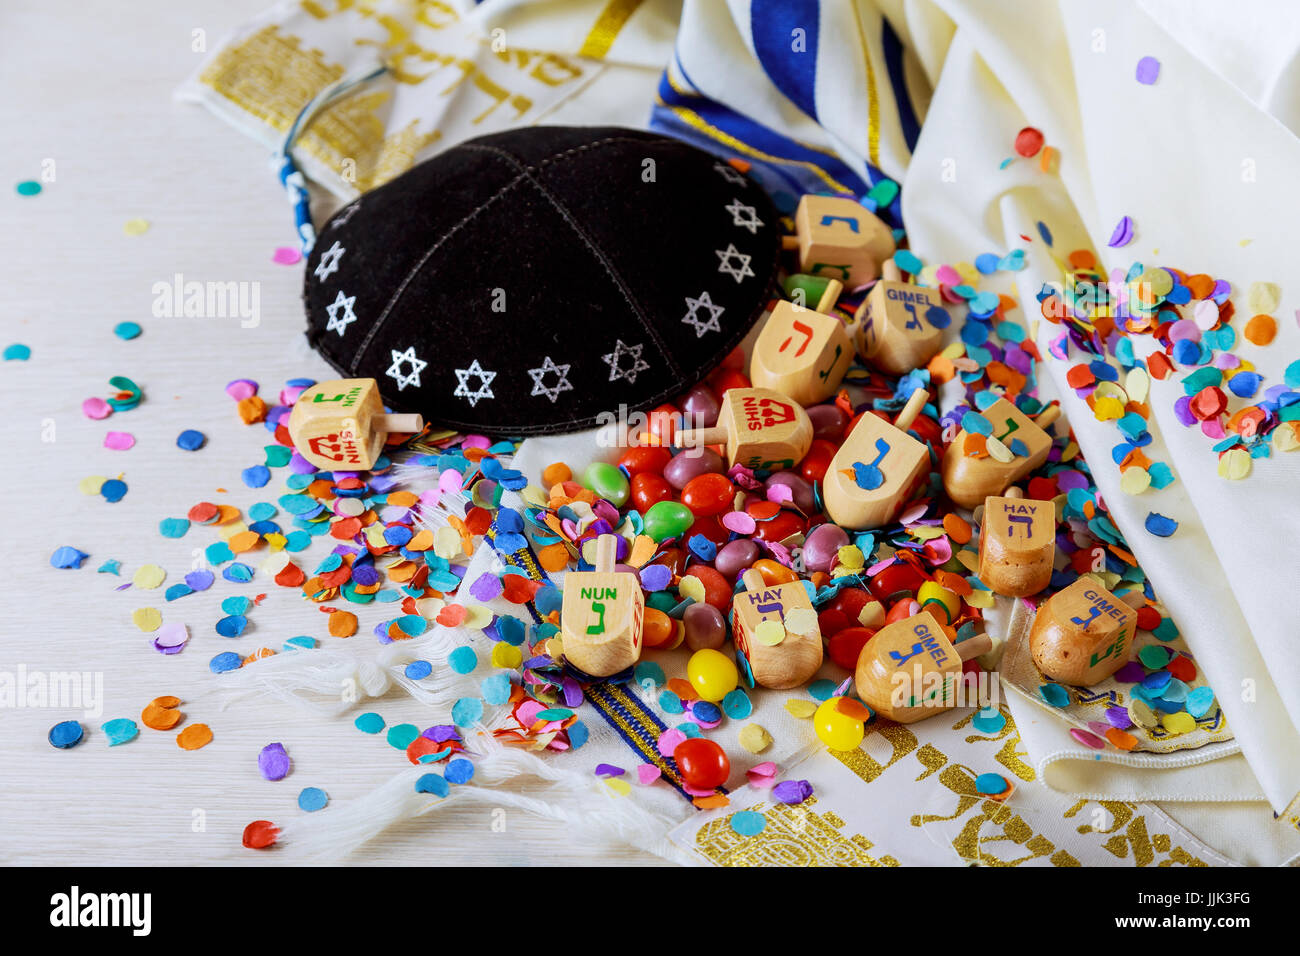 Jewish holiday still life composed of elements the Chanukah Hanukkah festival. - Stock Image